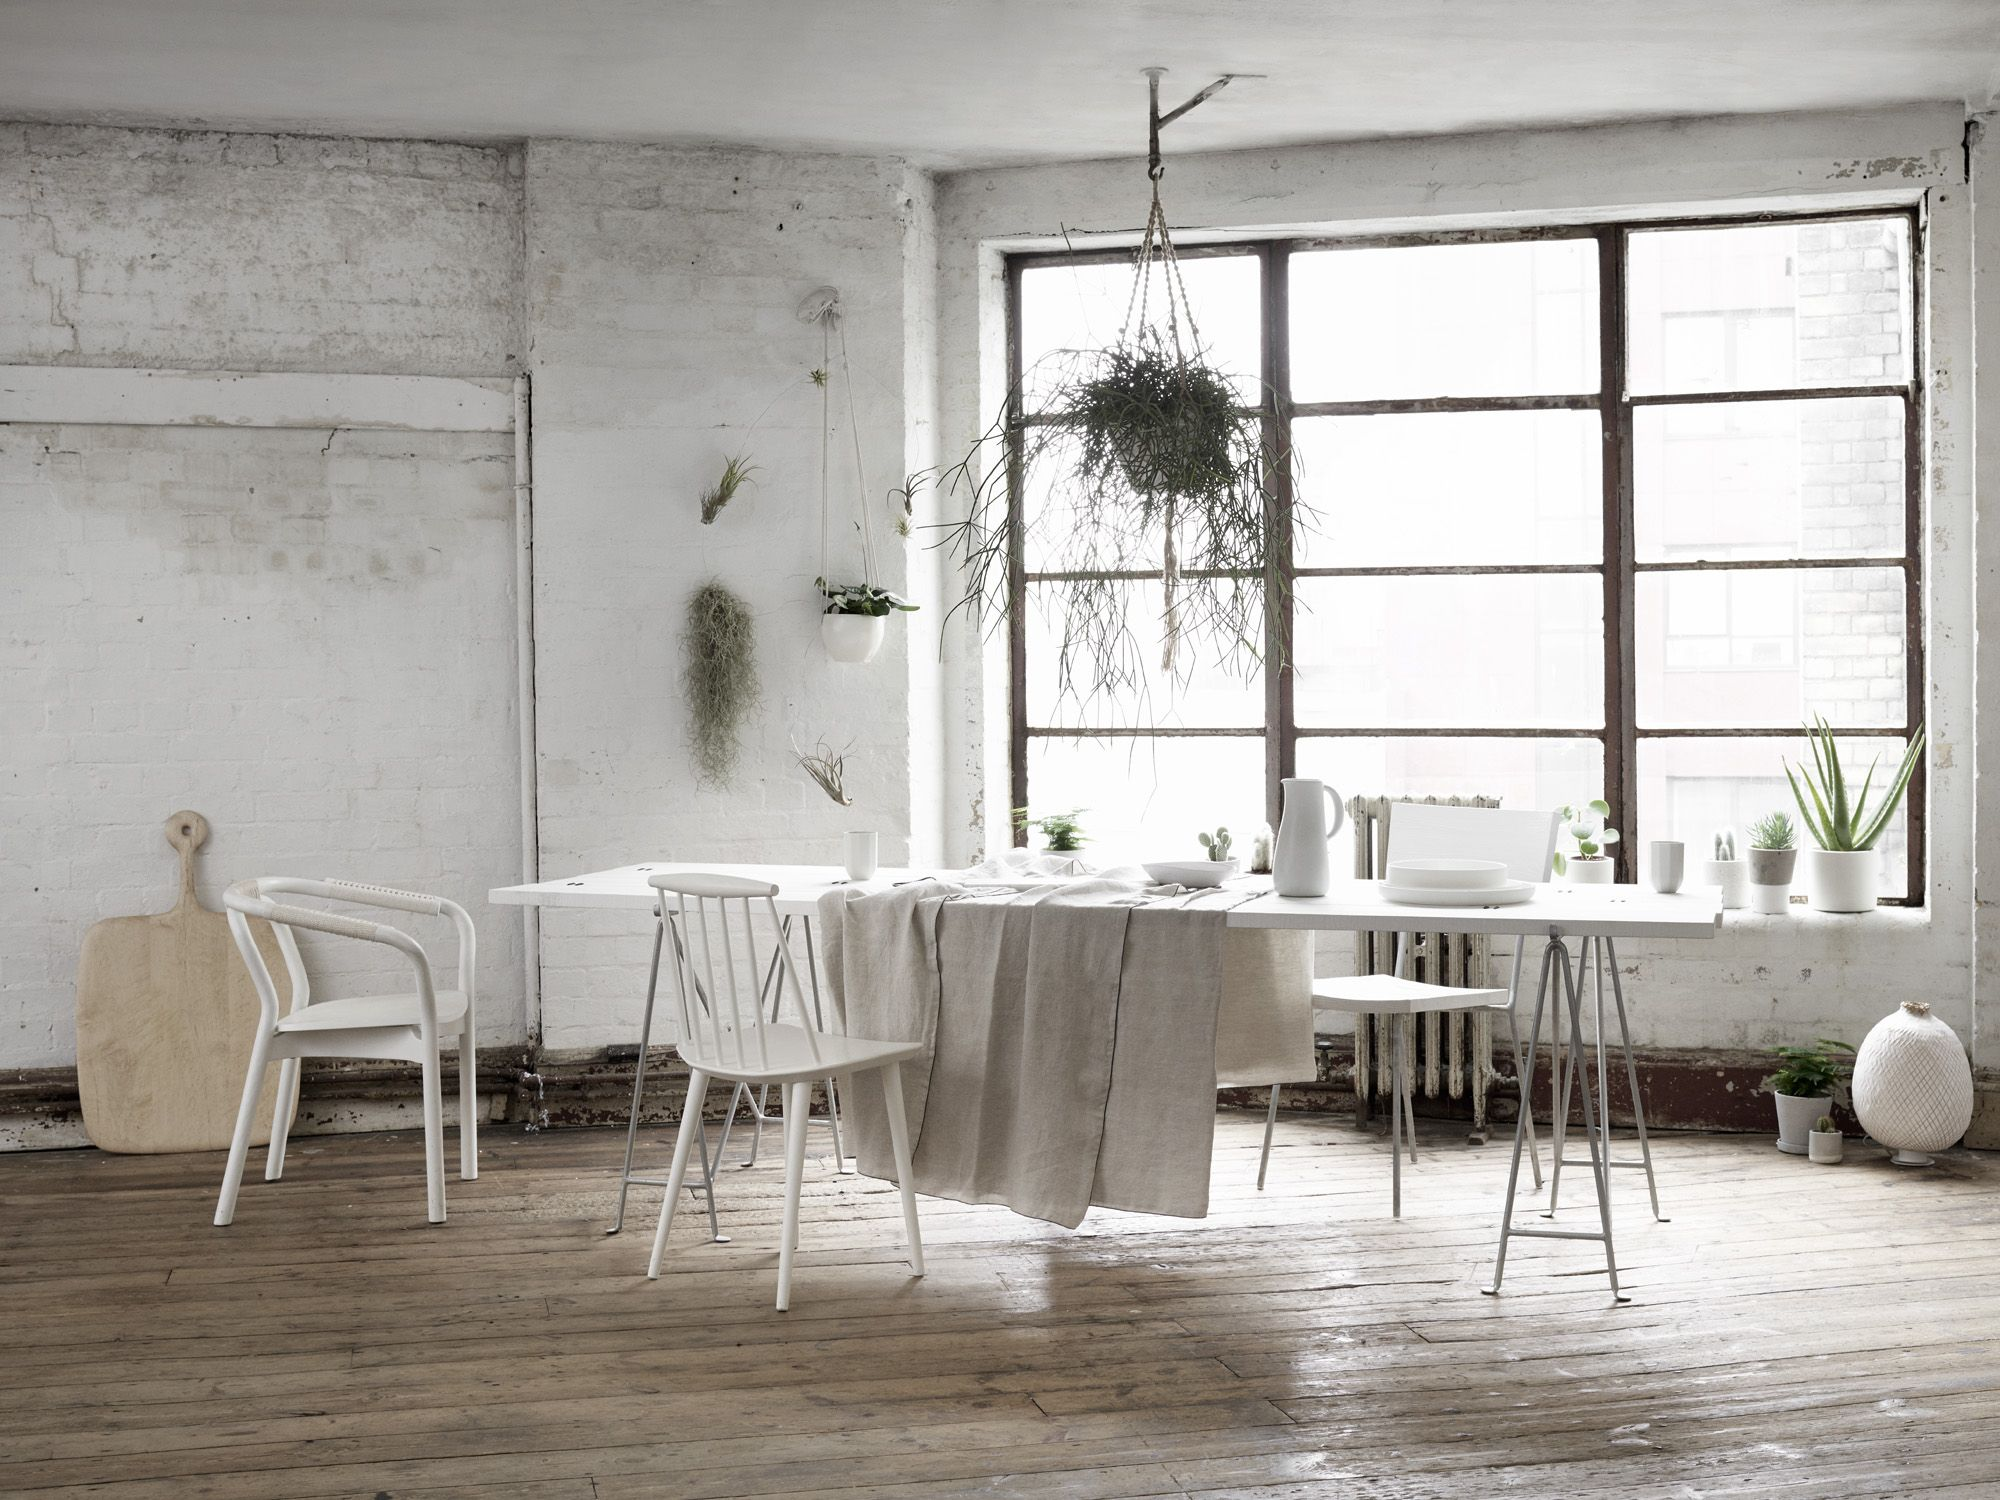 Elle deco Dining room -that floor color!